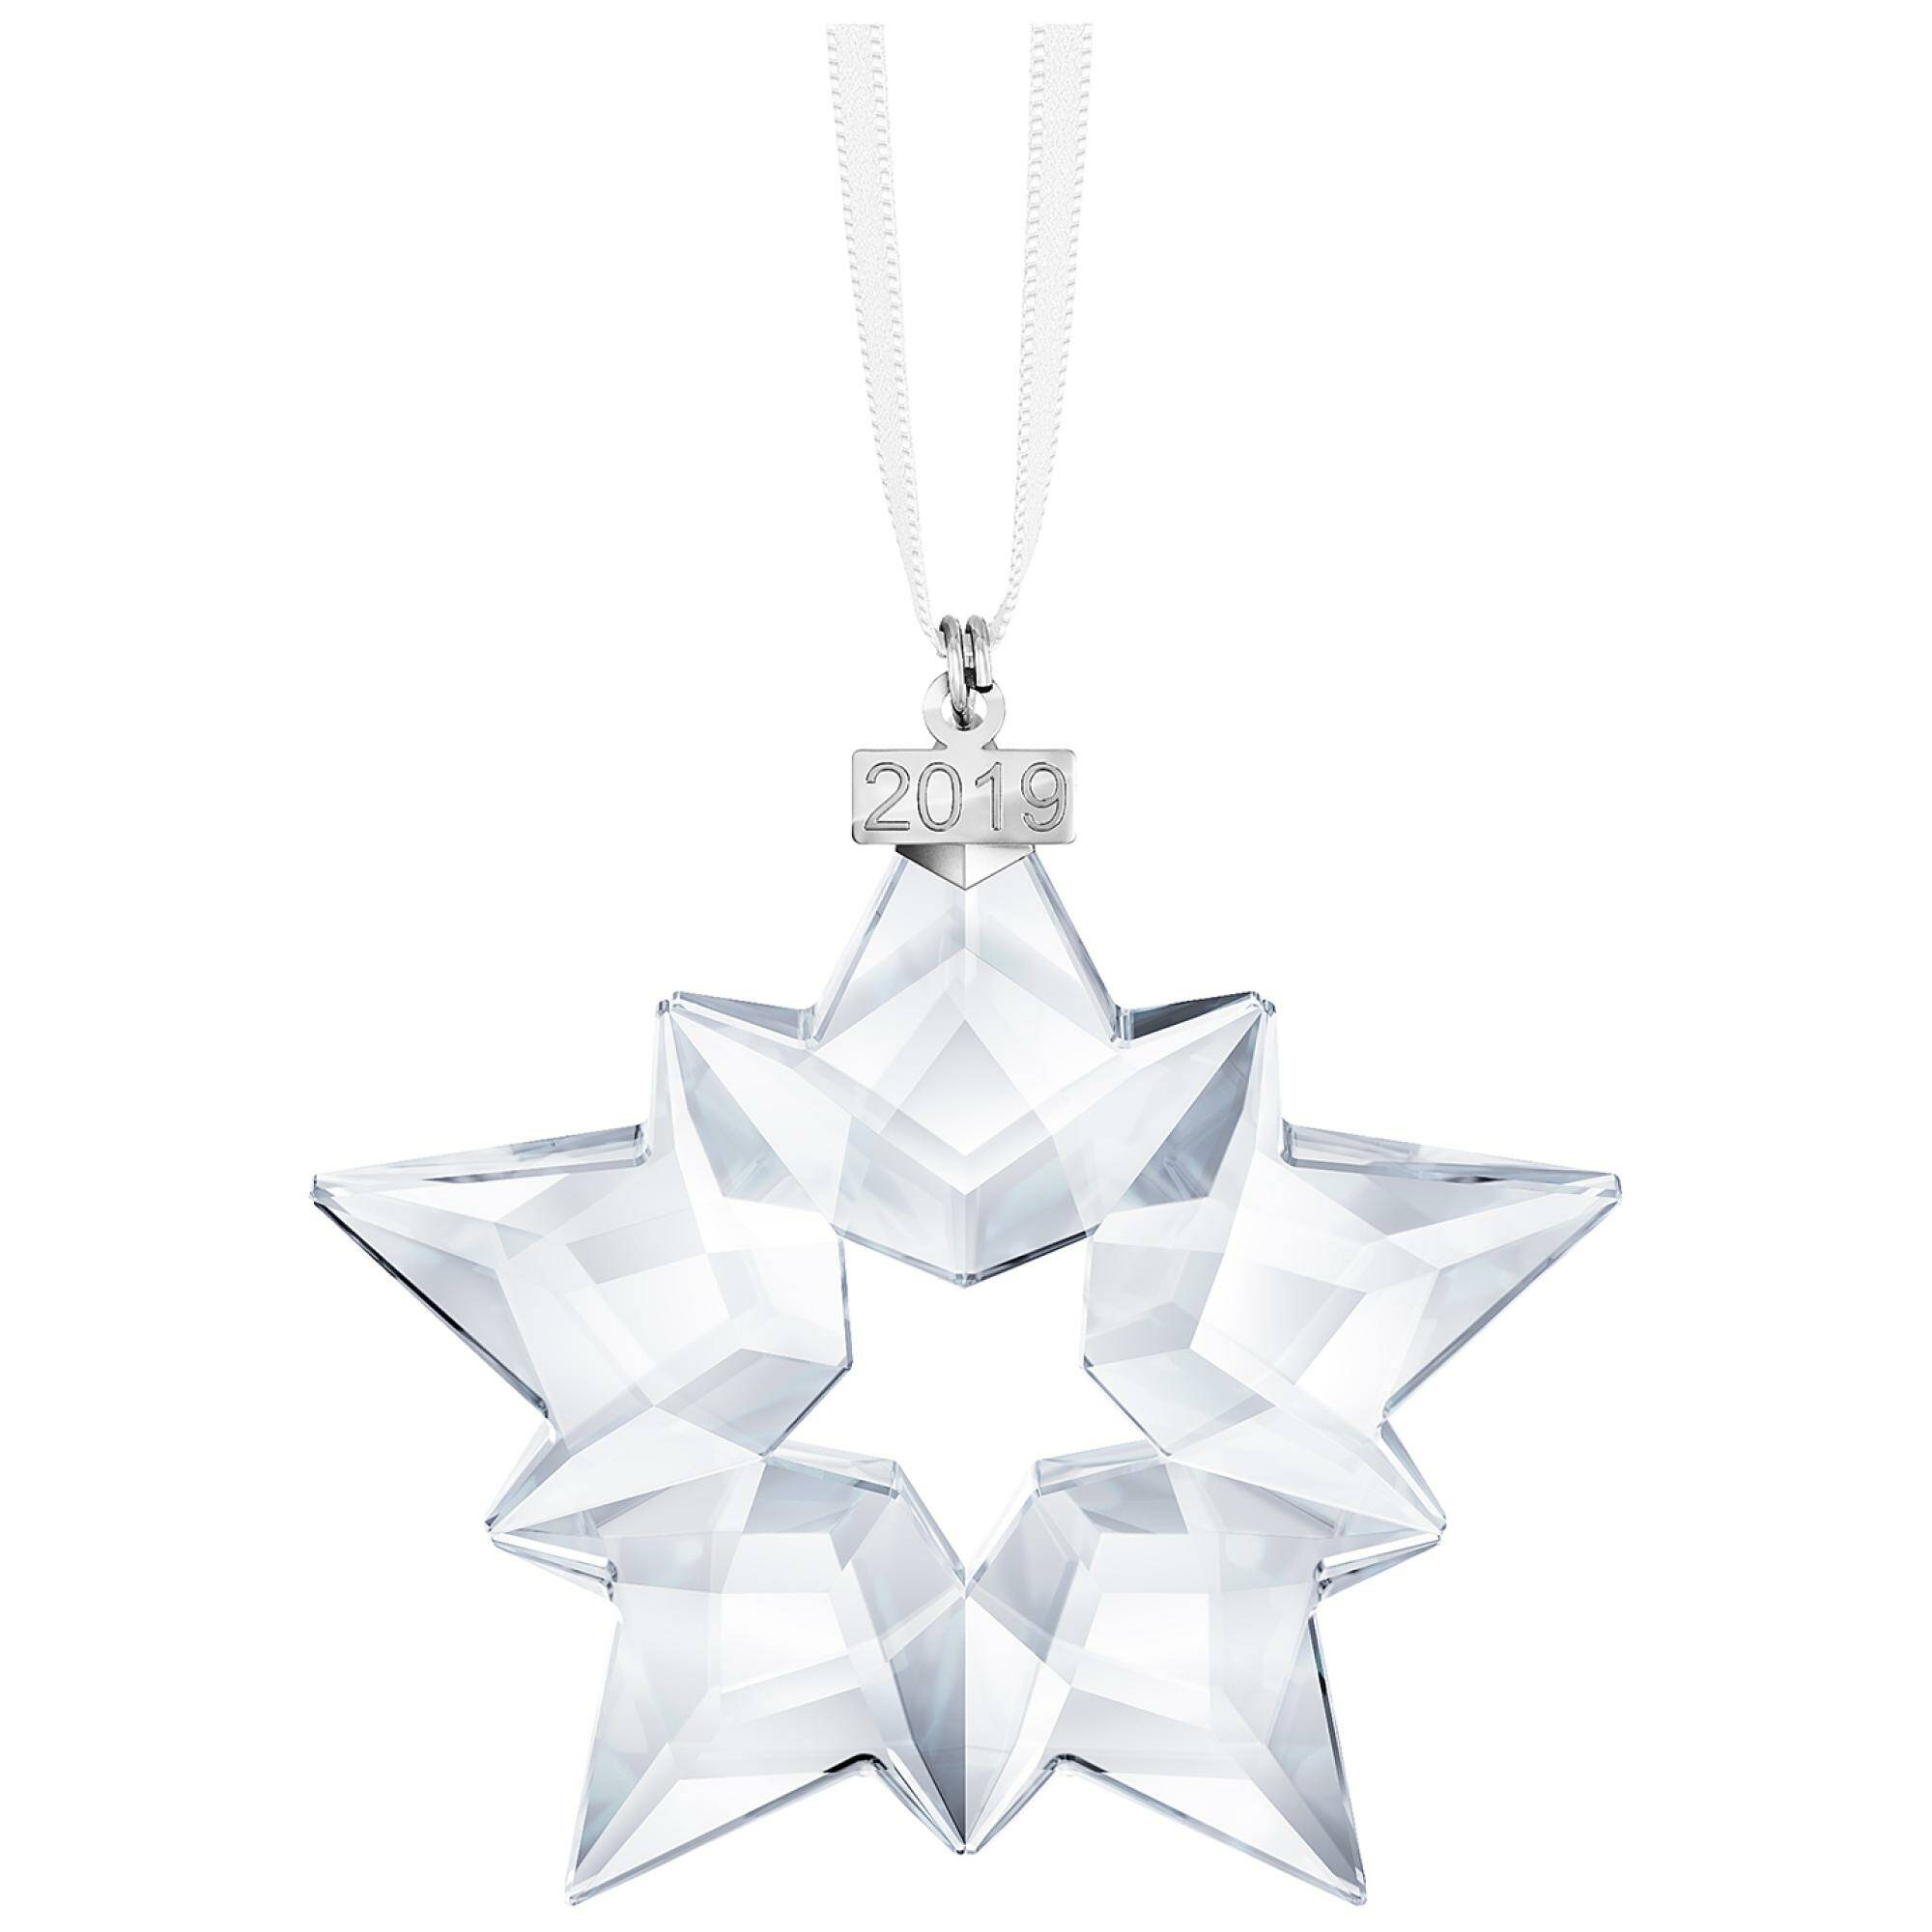 [SWAROVSKI] ANNUAL EDITION ORNAMENT 2019